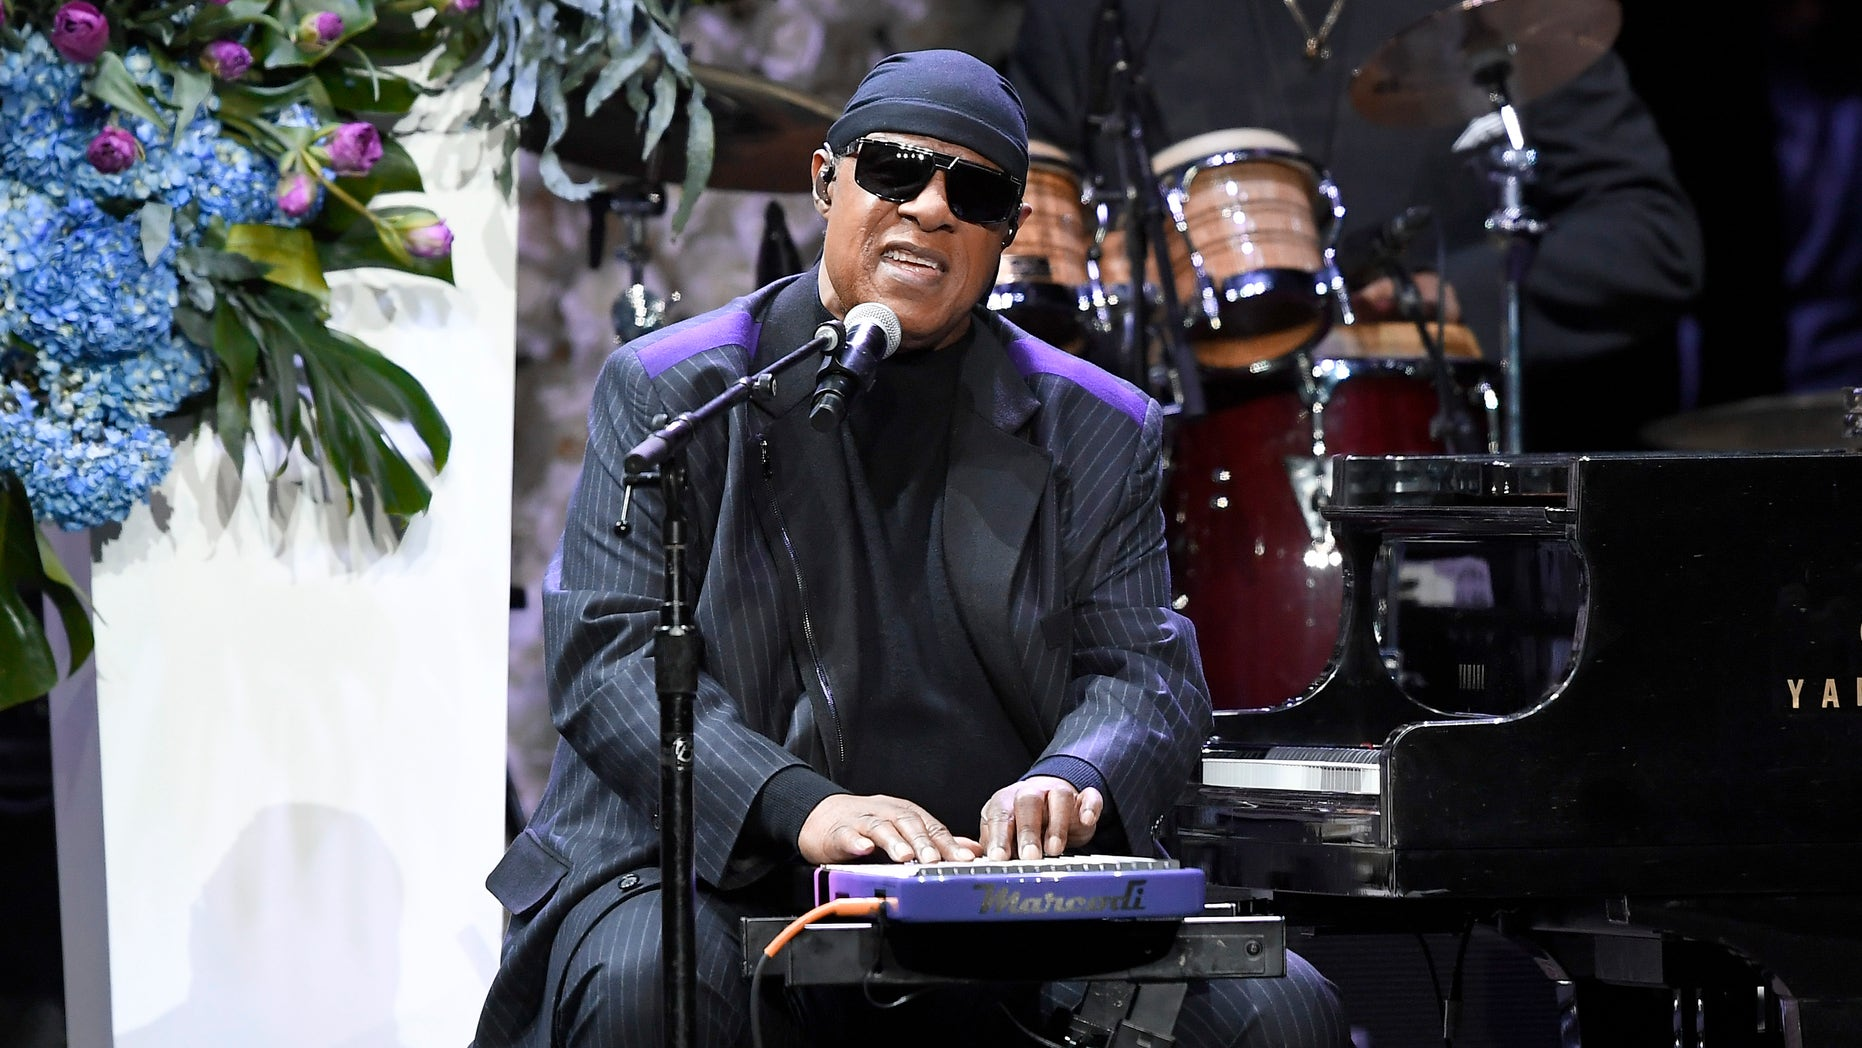 Stevie Wonder performs onstage during Nipsey Hussle's Celebration of Life at STAPLES Center on April 11, 2019 in Los Angeles, California.